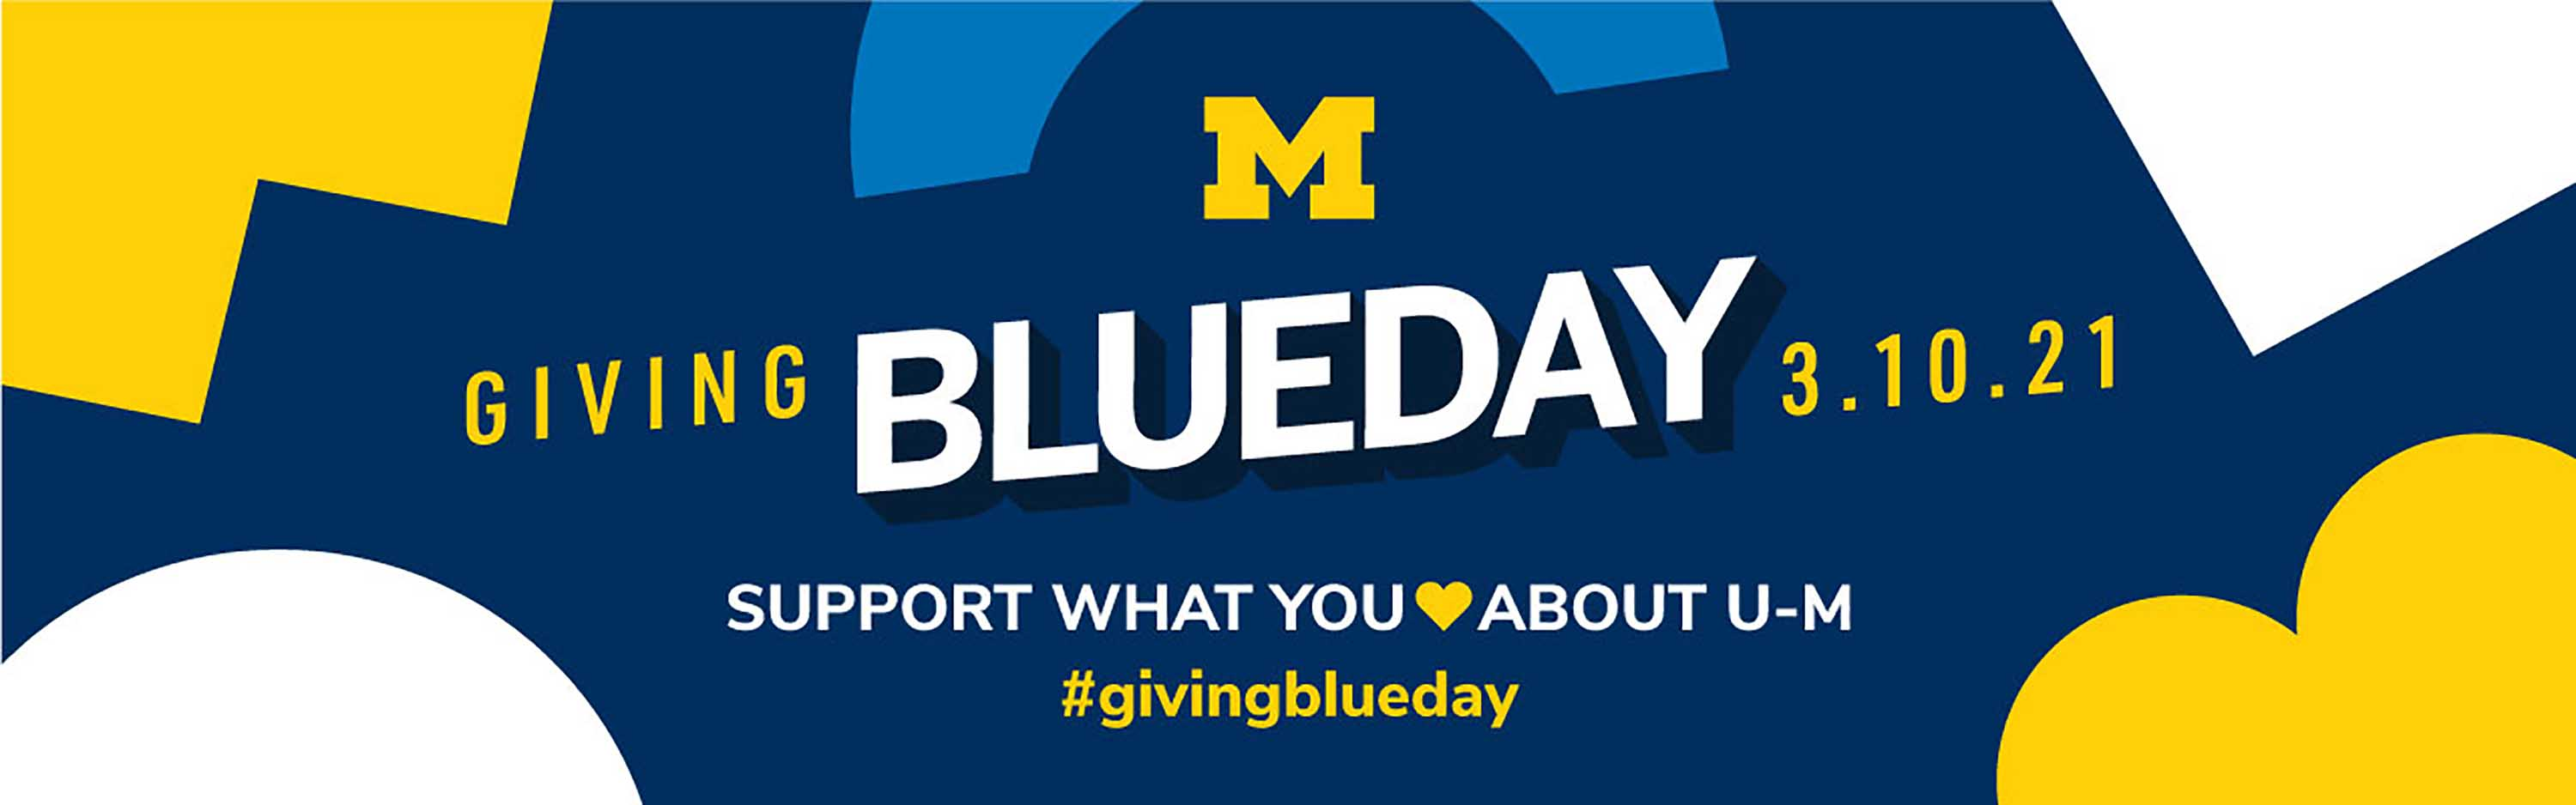 giving blue day 2021